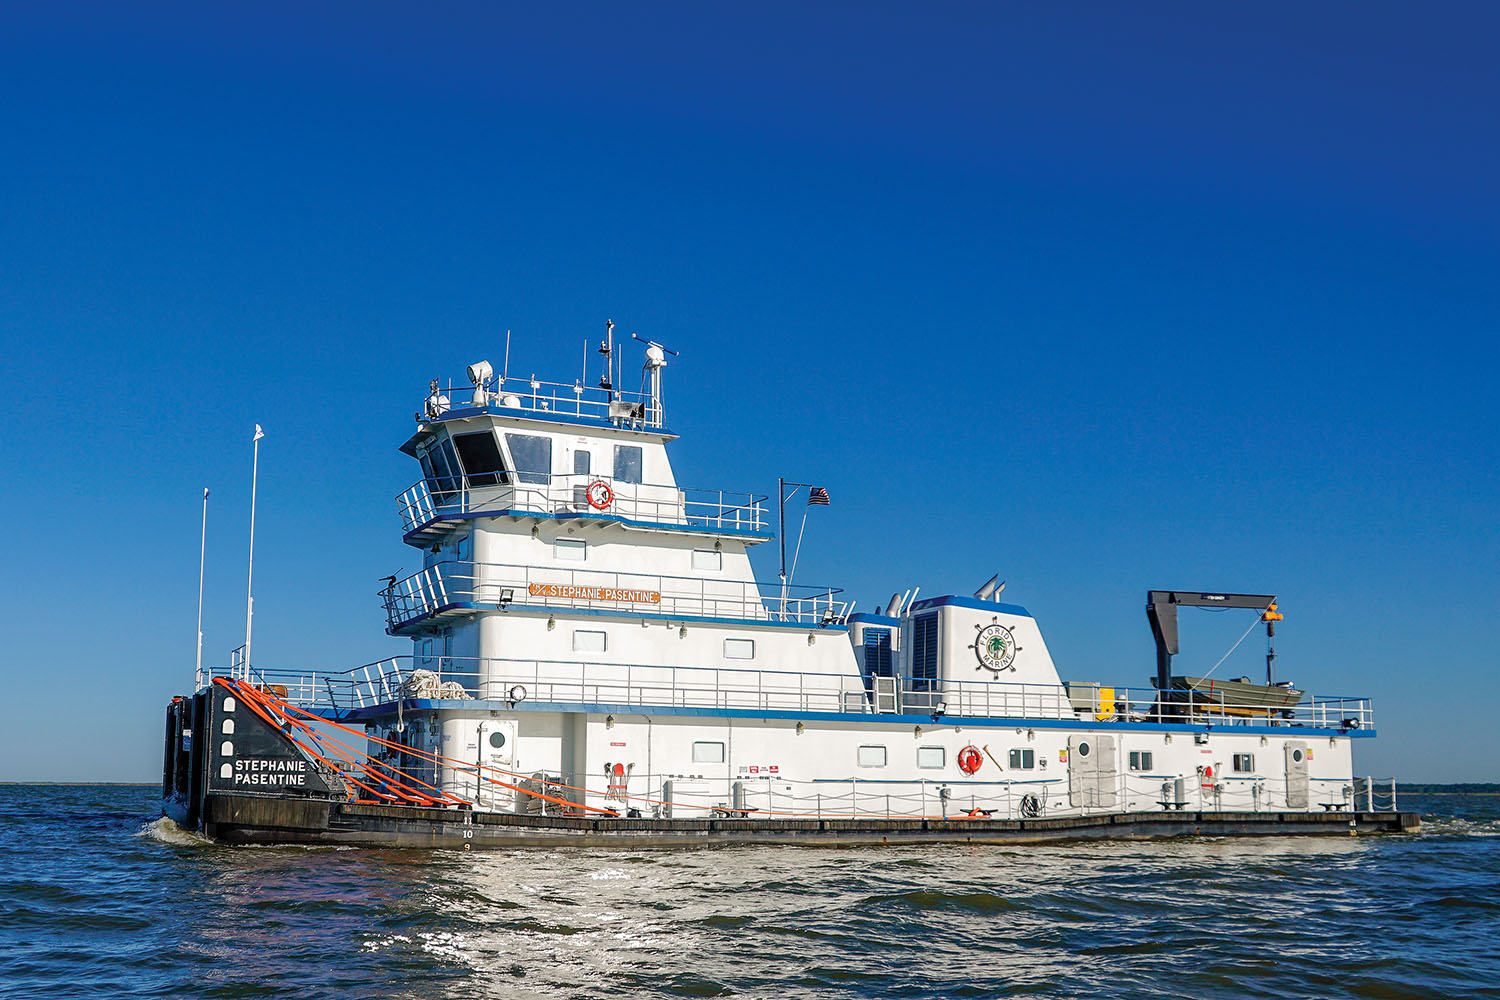 The Stephanie Pasentine is Metal Shark's first steel new build and first inland towboat. (Photo courtesy of Metal Shark Alabama)